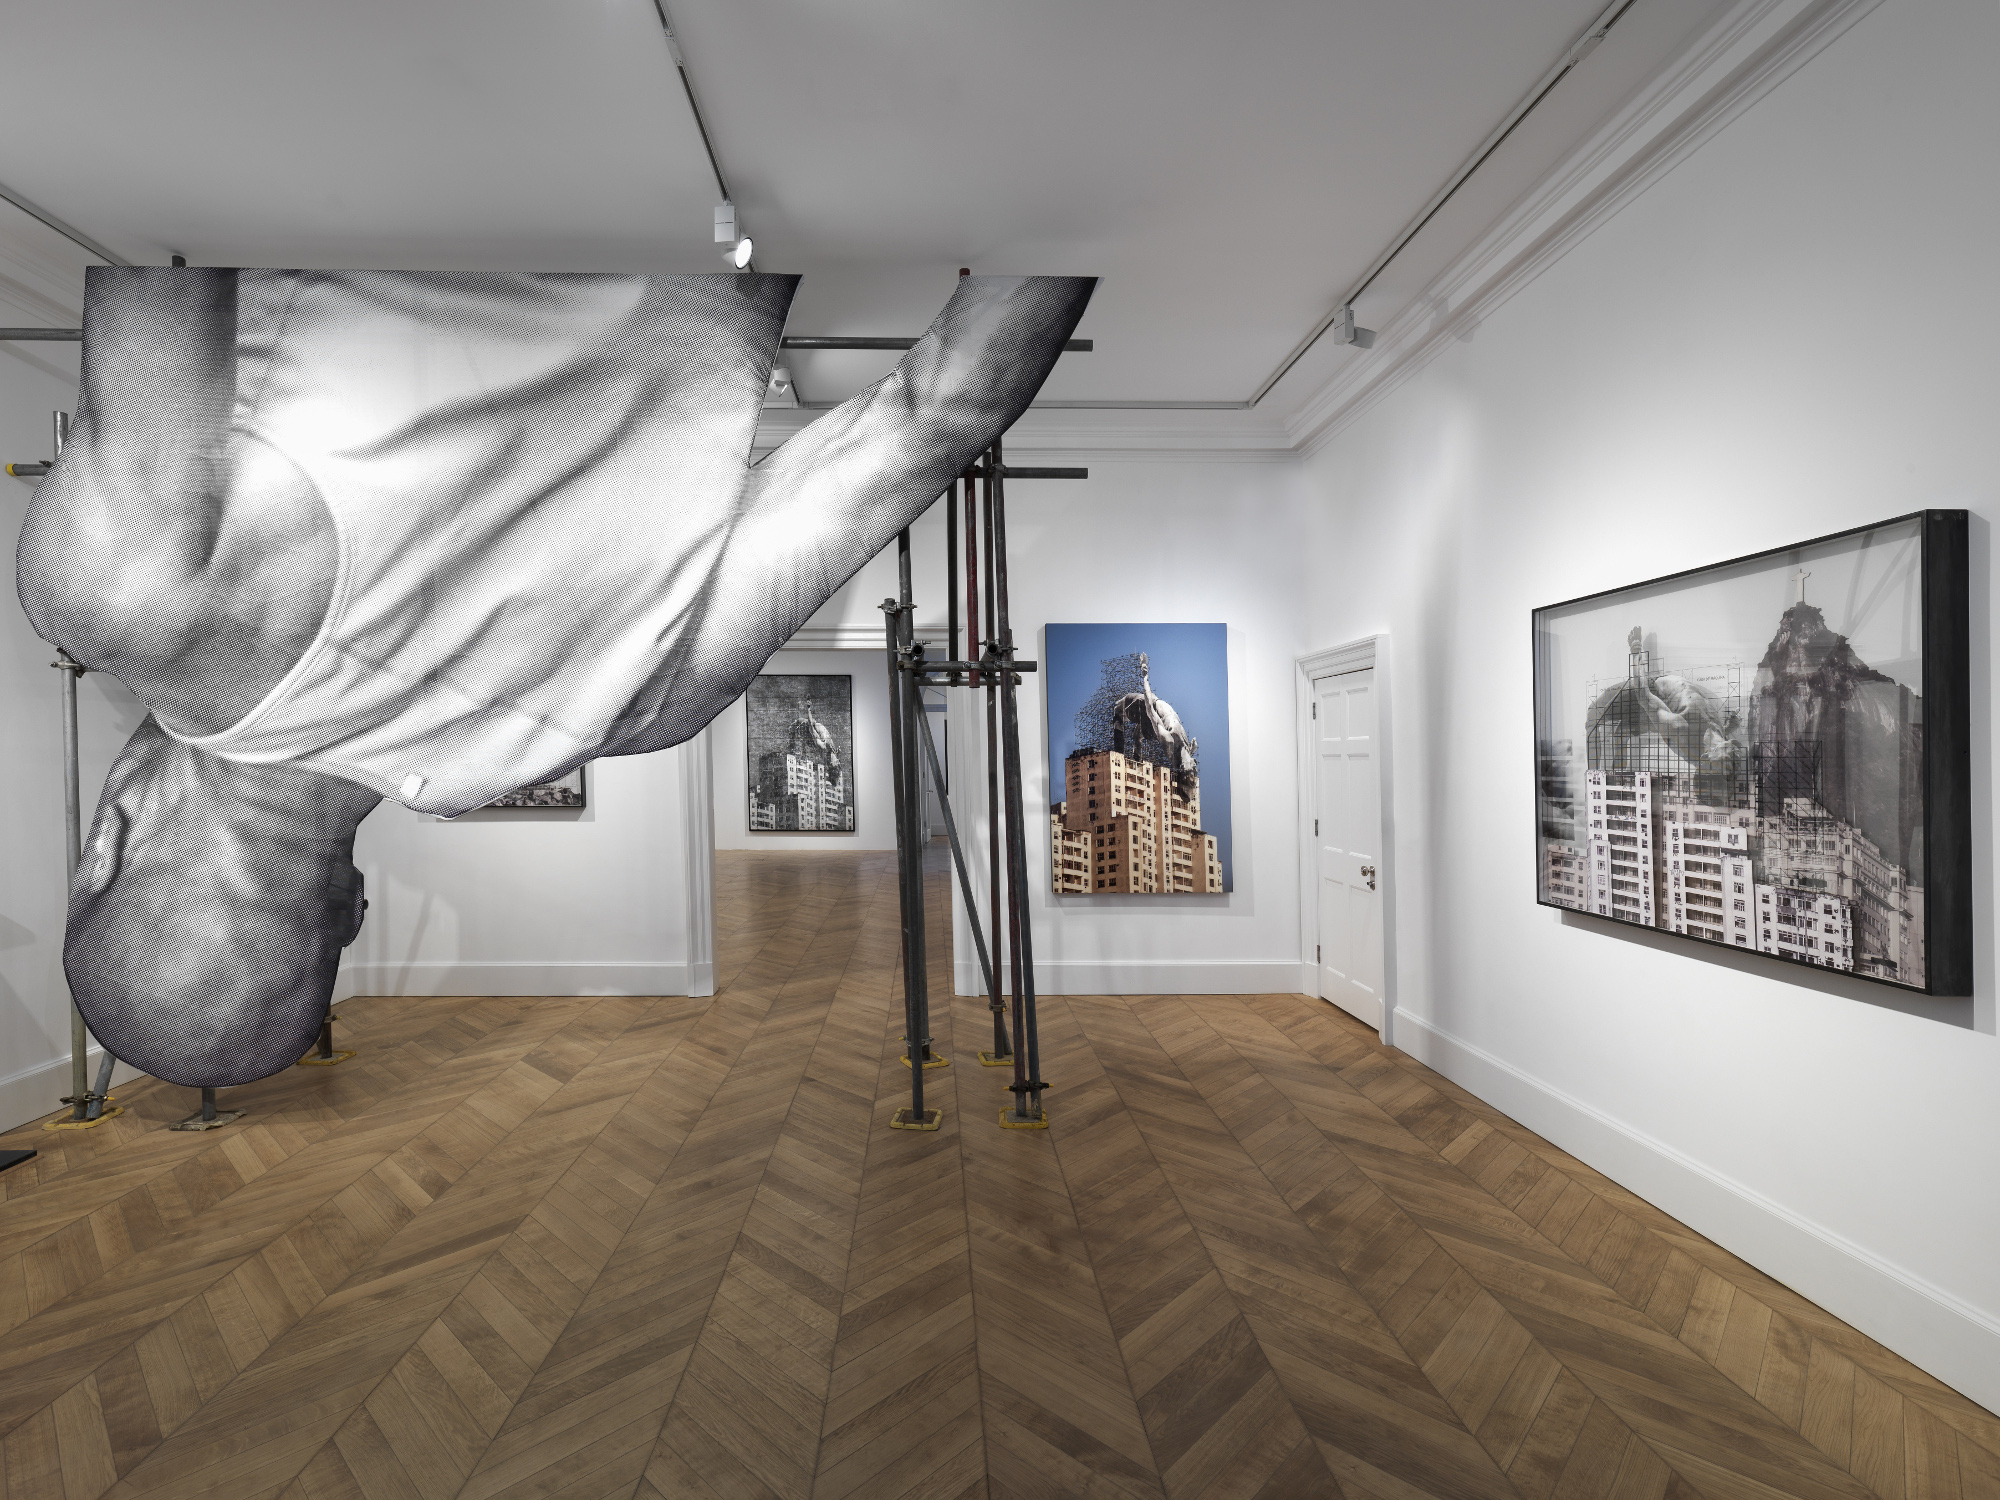 A view of the Giant exhibition at Lazinc Gallery.